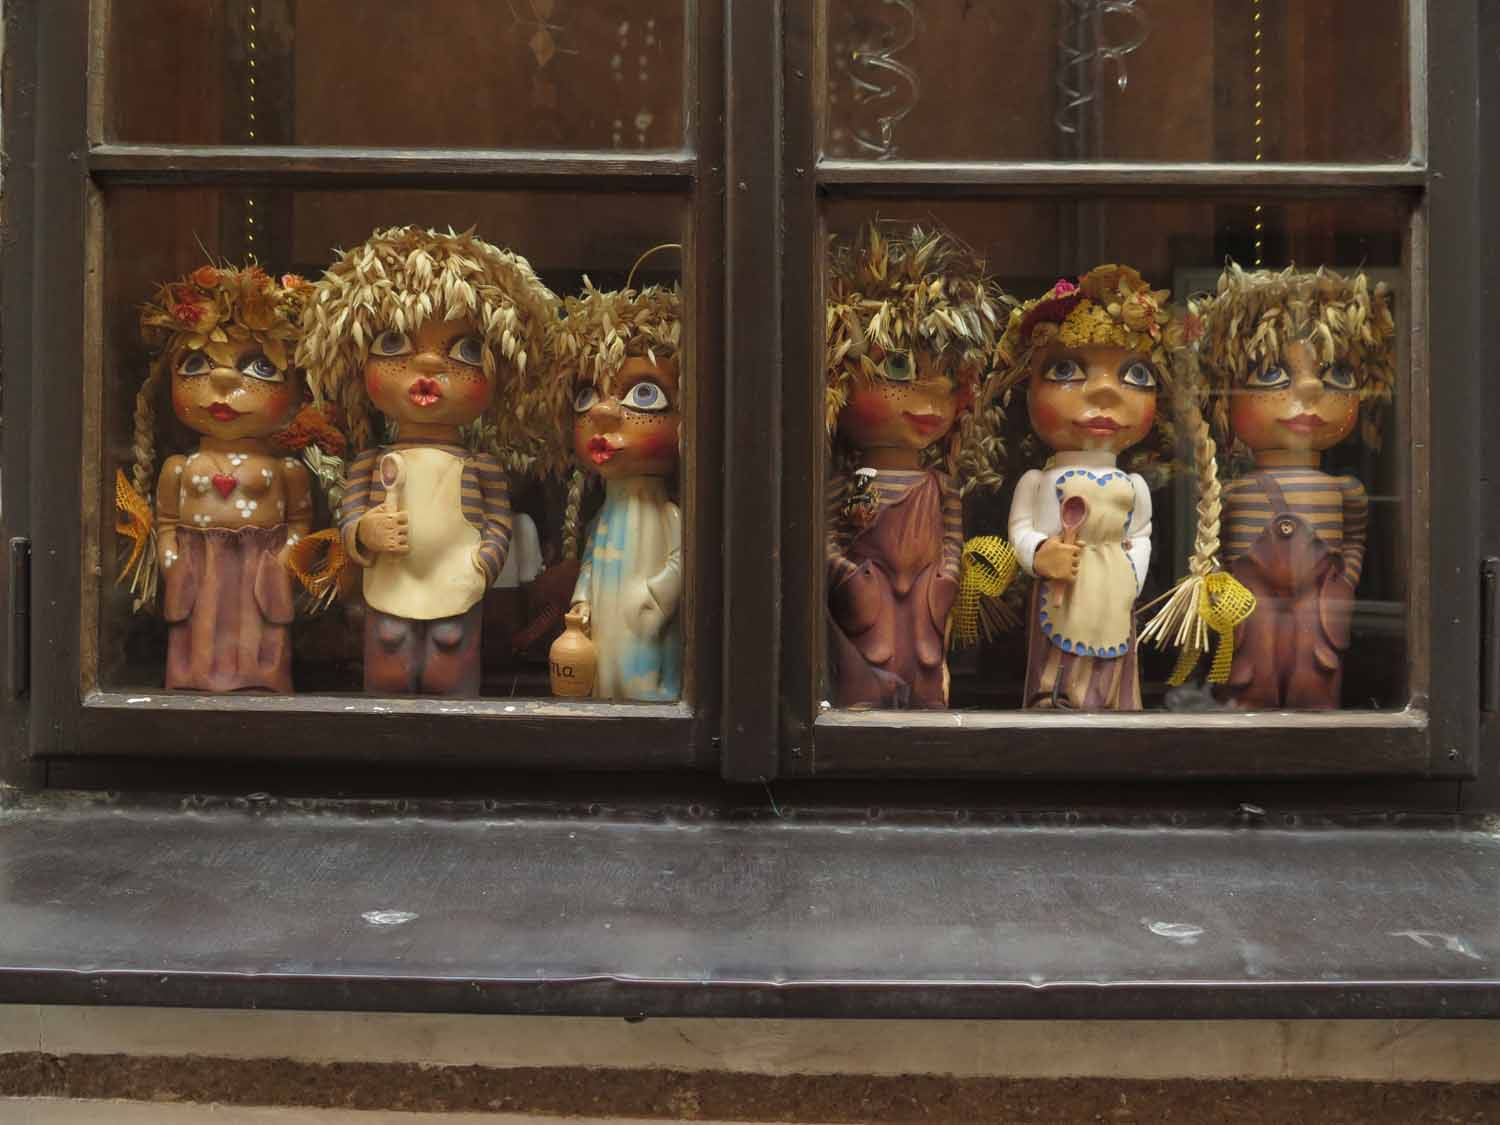 czech-republic-czesky-krumlov-dolls-in-wIndow